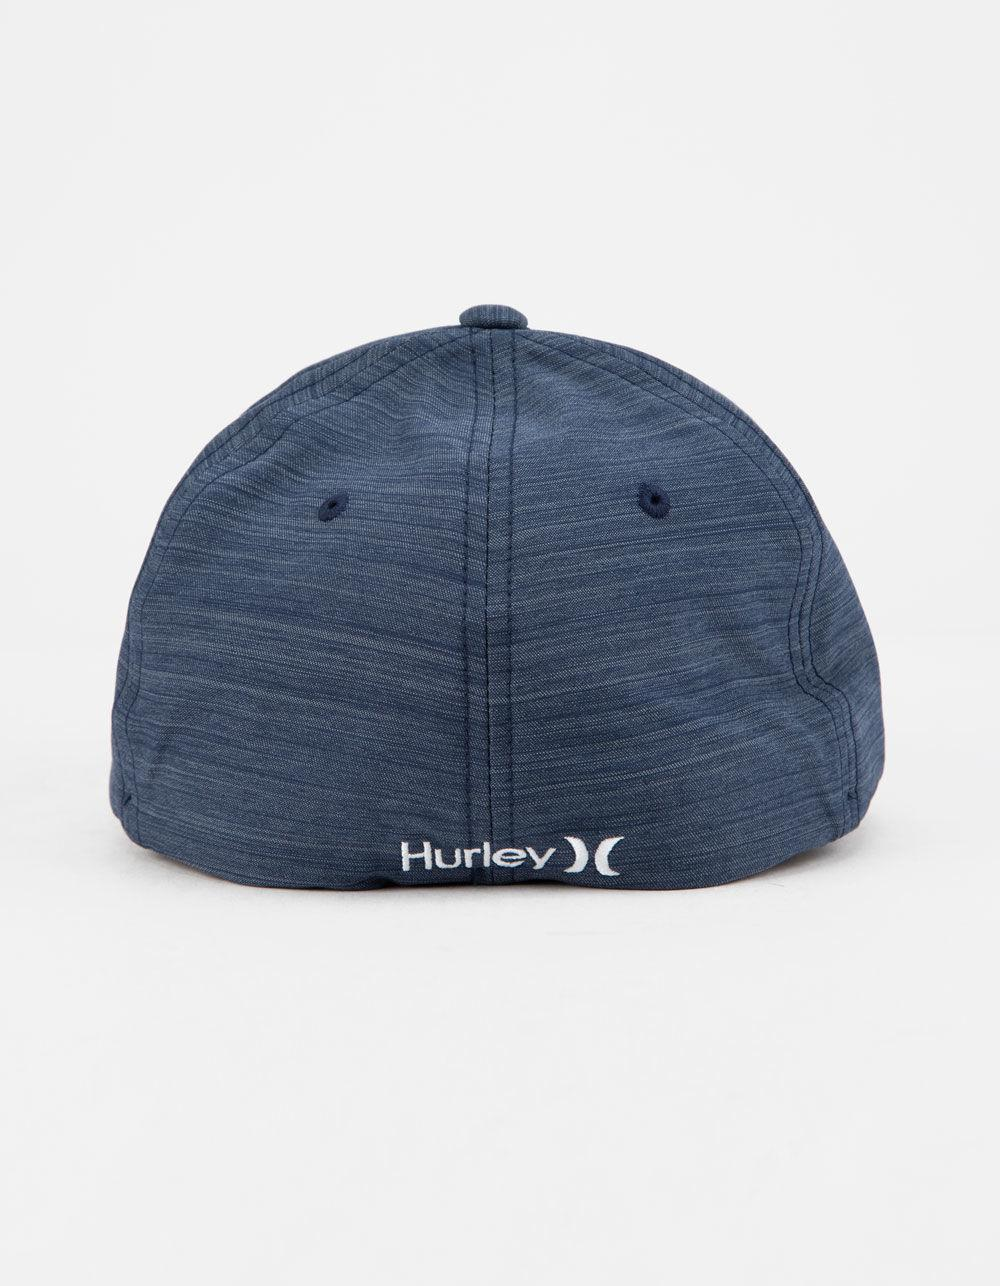 hot sale online 82da8 62ab4 Lyst - Hurley Dri-fit Cutback Mens Flexfit Hat in Blue for Men